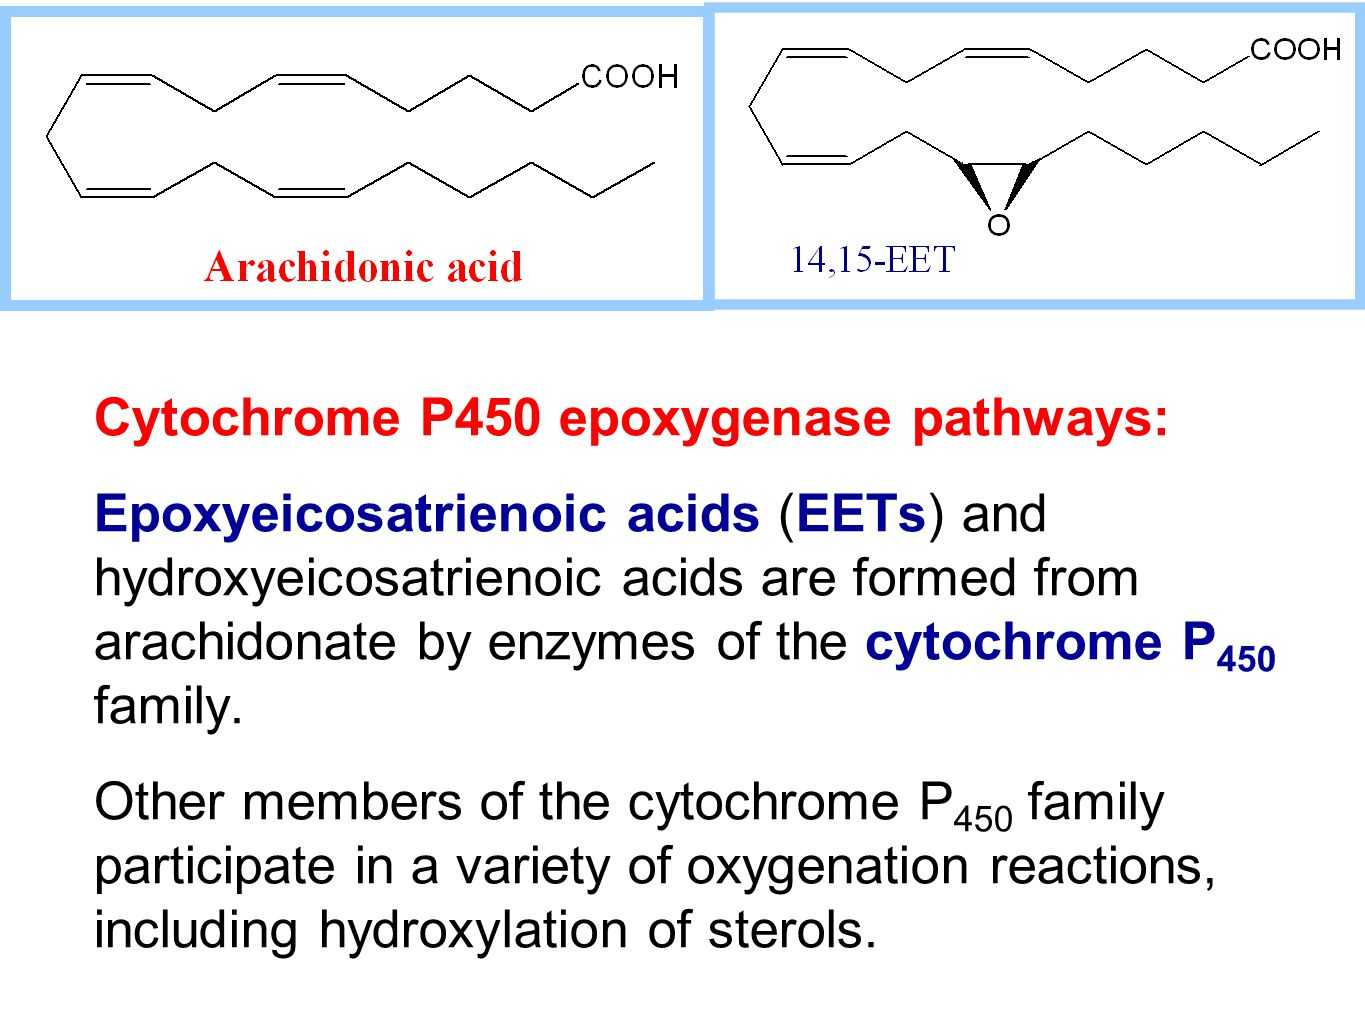 Cytochrome P450 epoxygenase pathways: